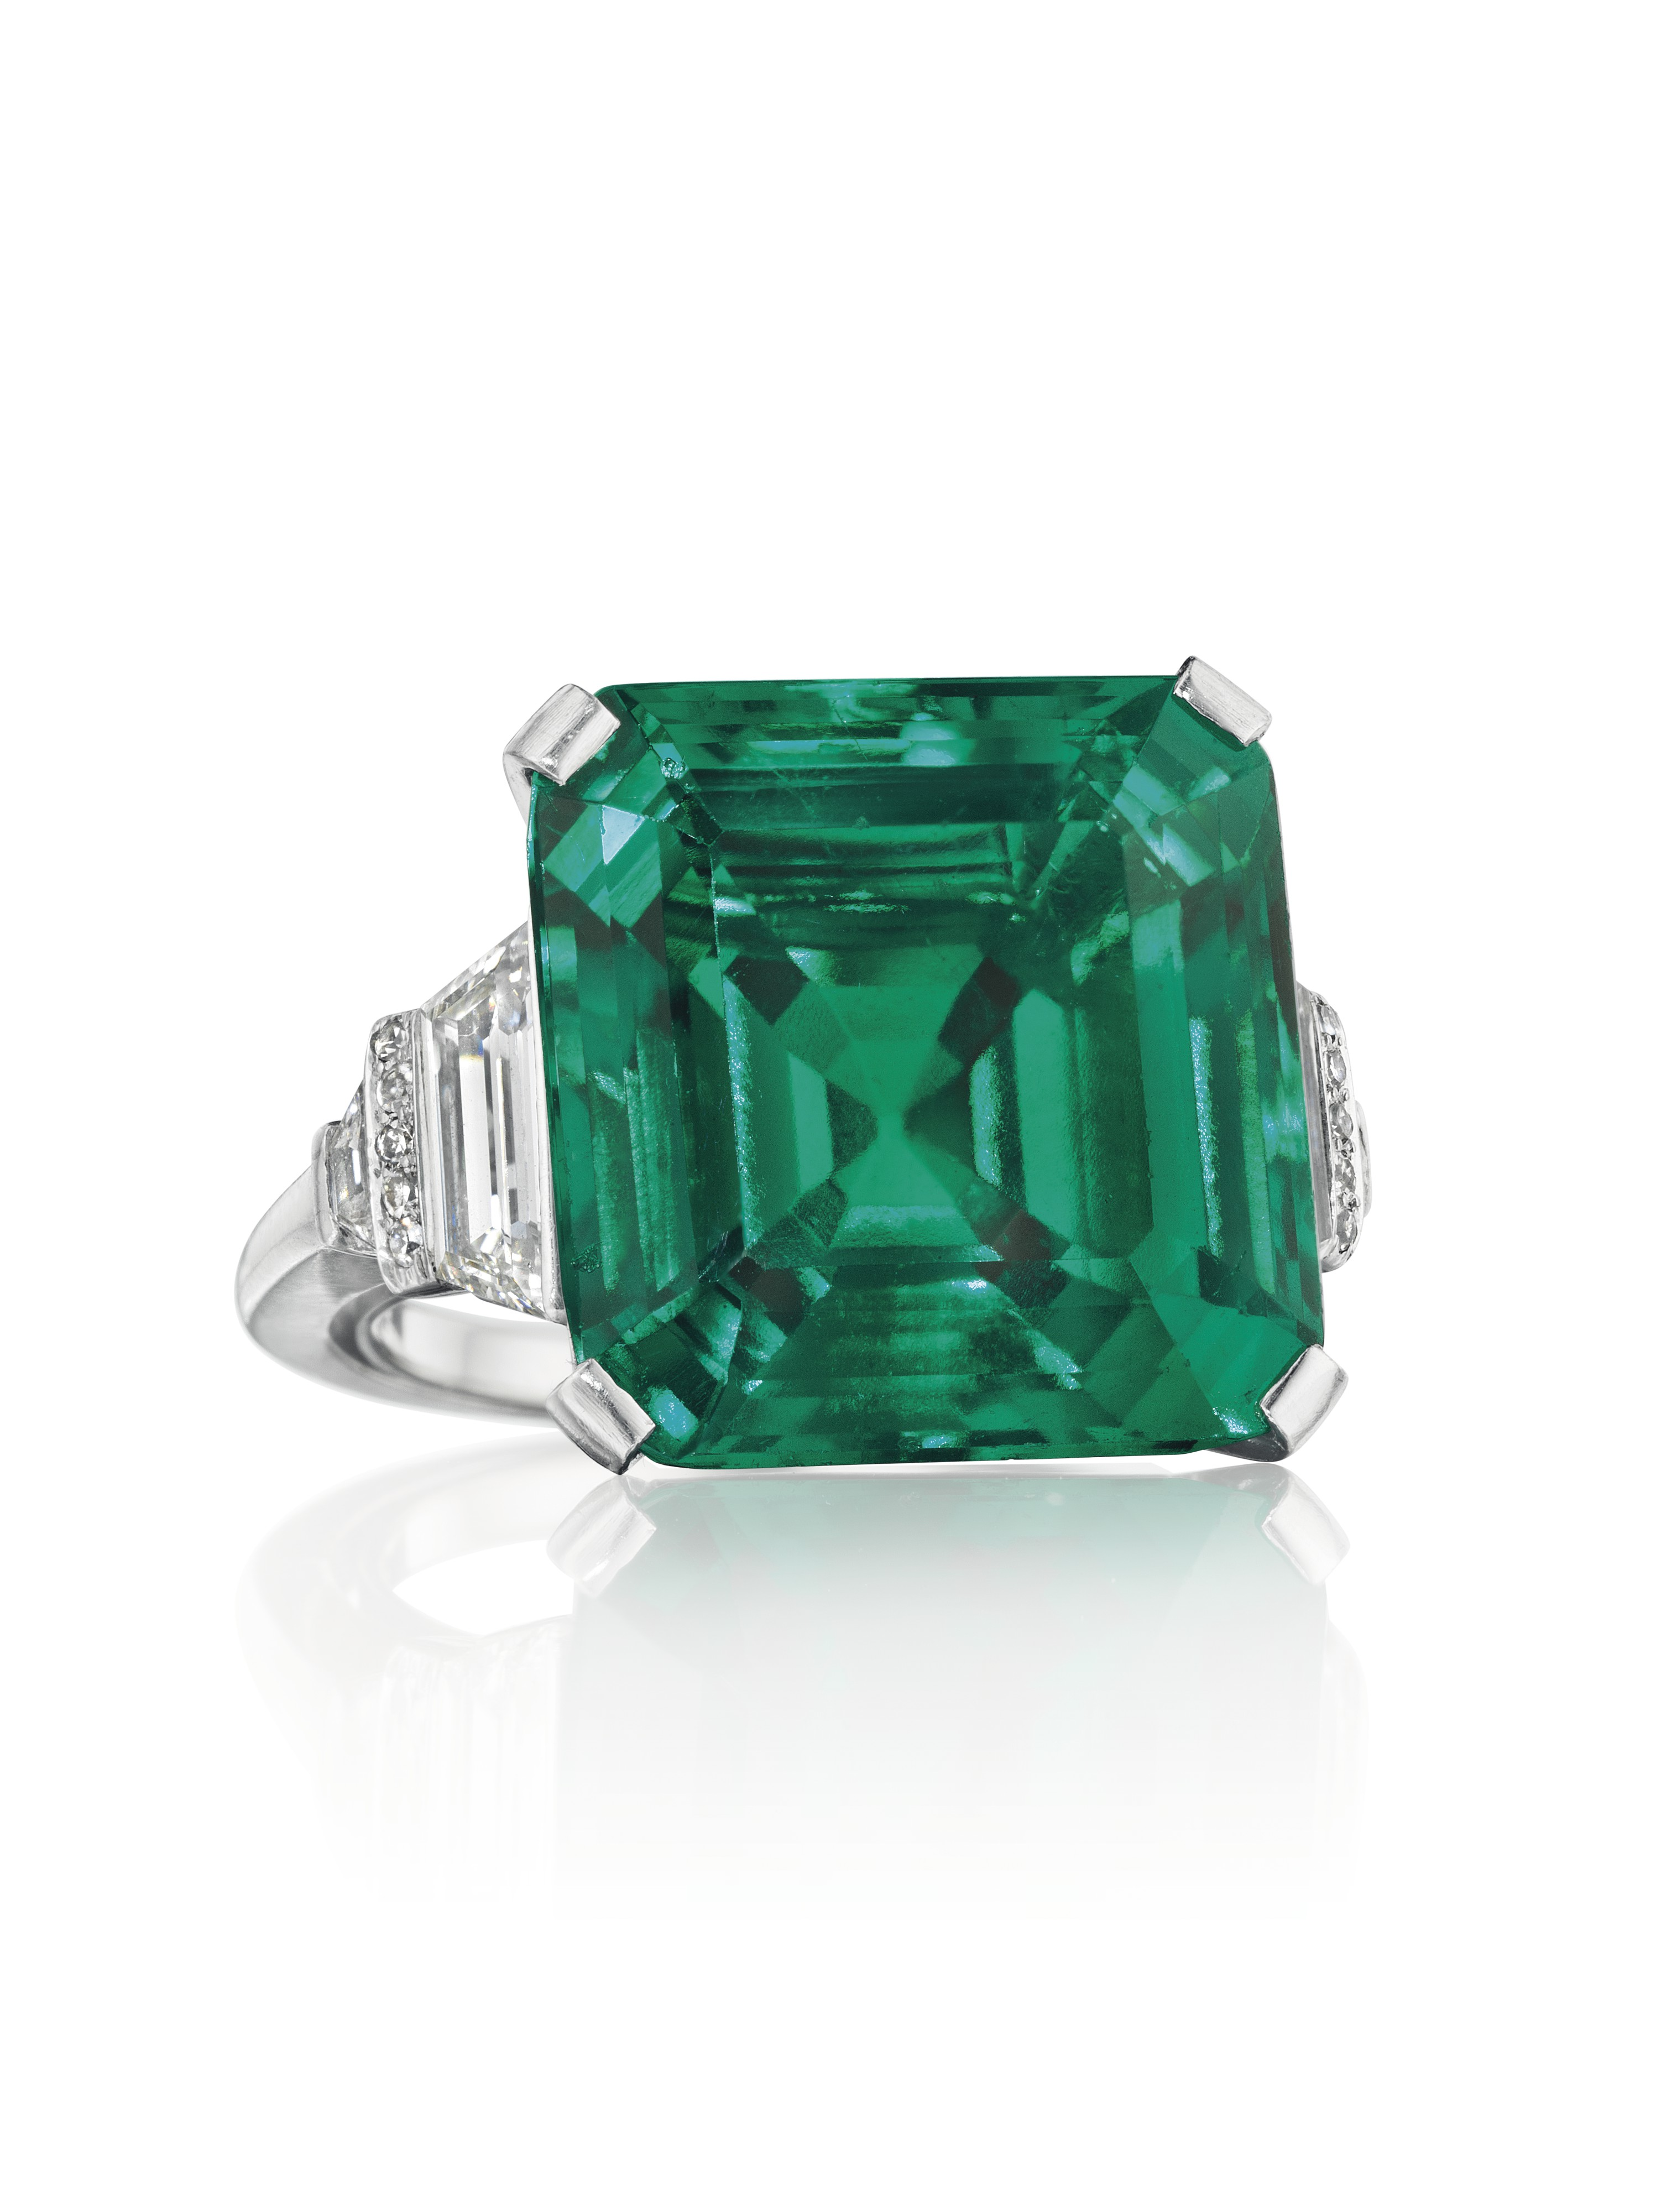 rockefeller emerald comes to auction